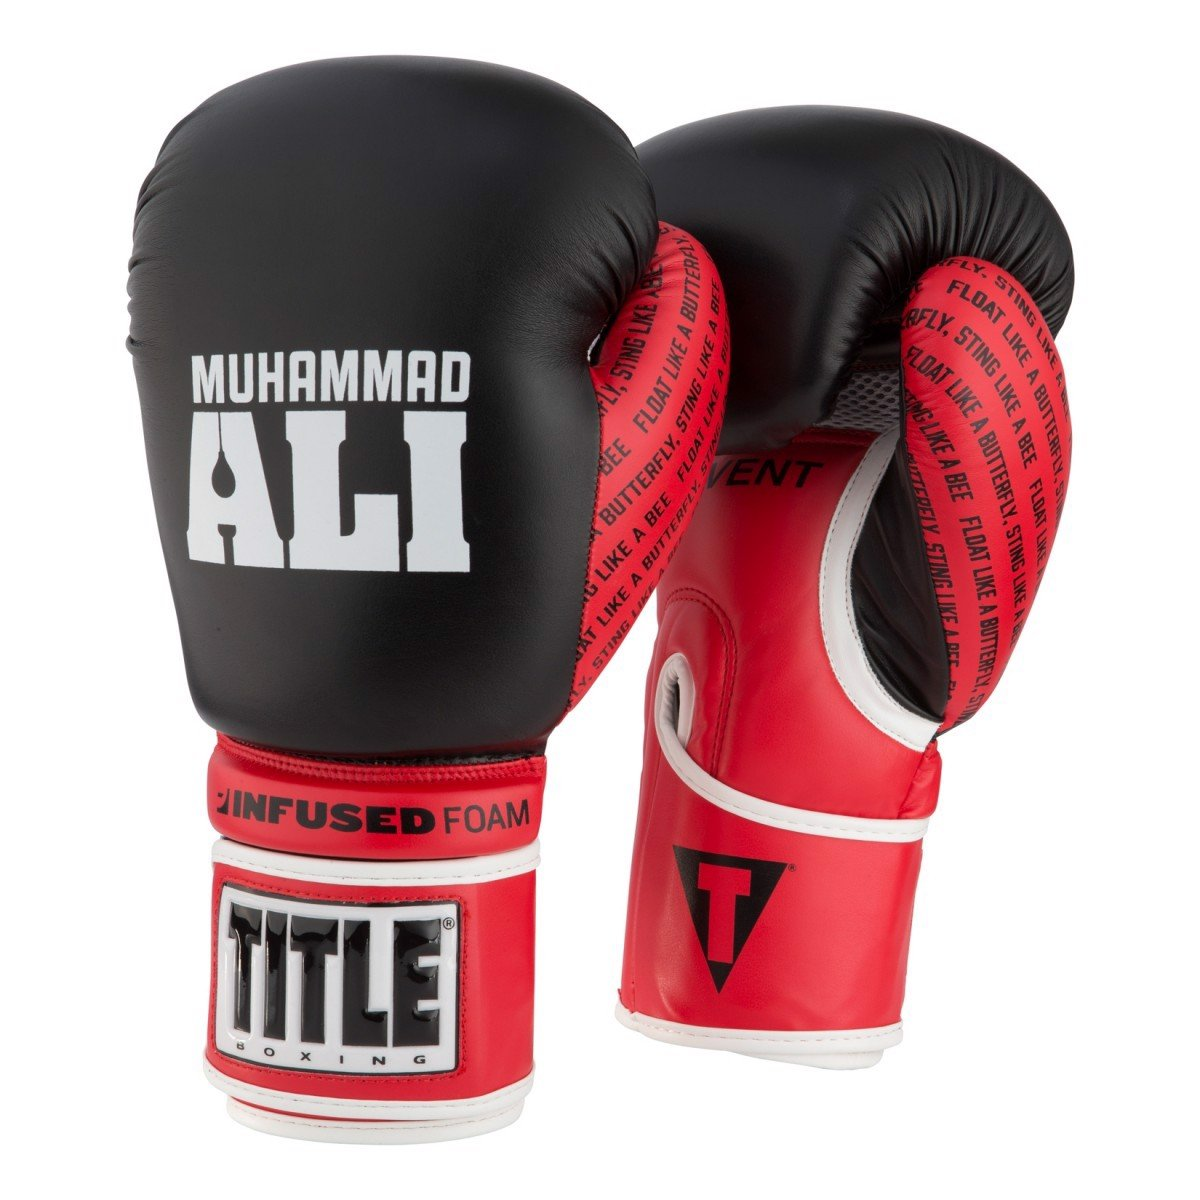 Găng Tay Title Ali Infused Foam Training Gloves - Black/Red